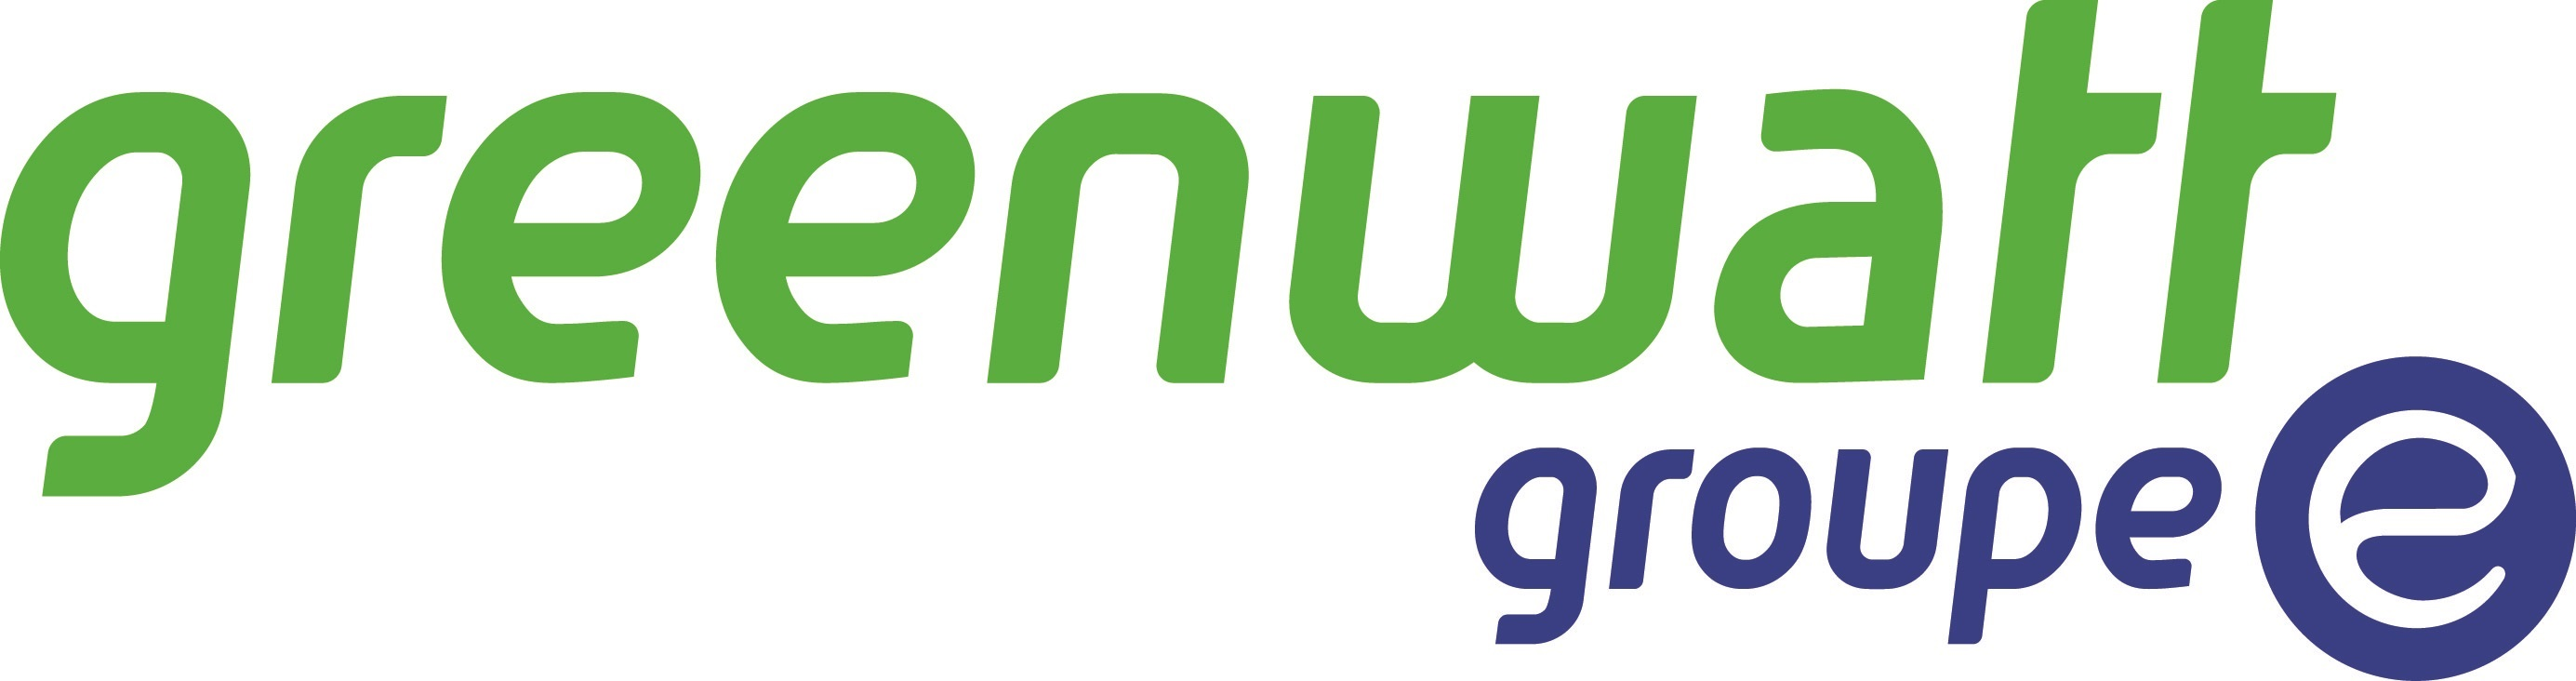 Logo GreenwattGroup